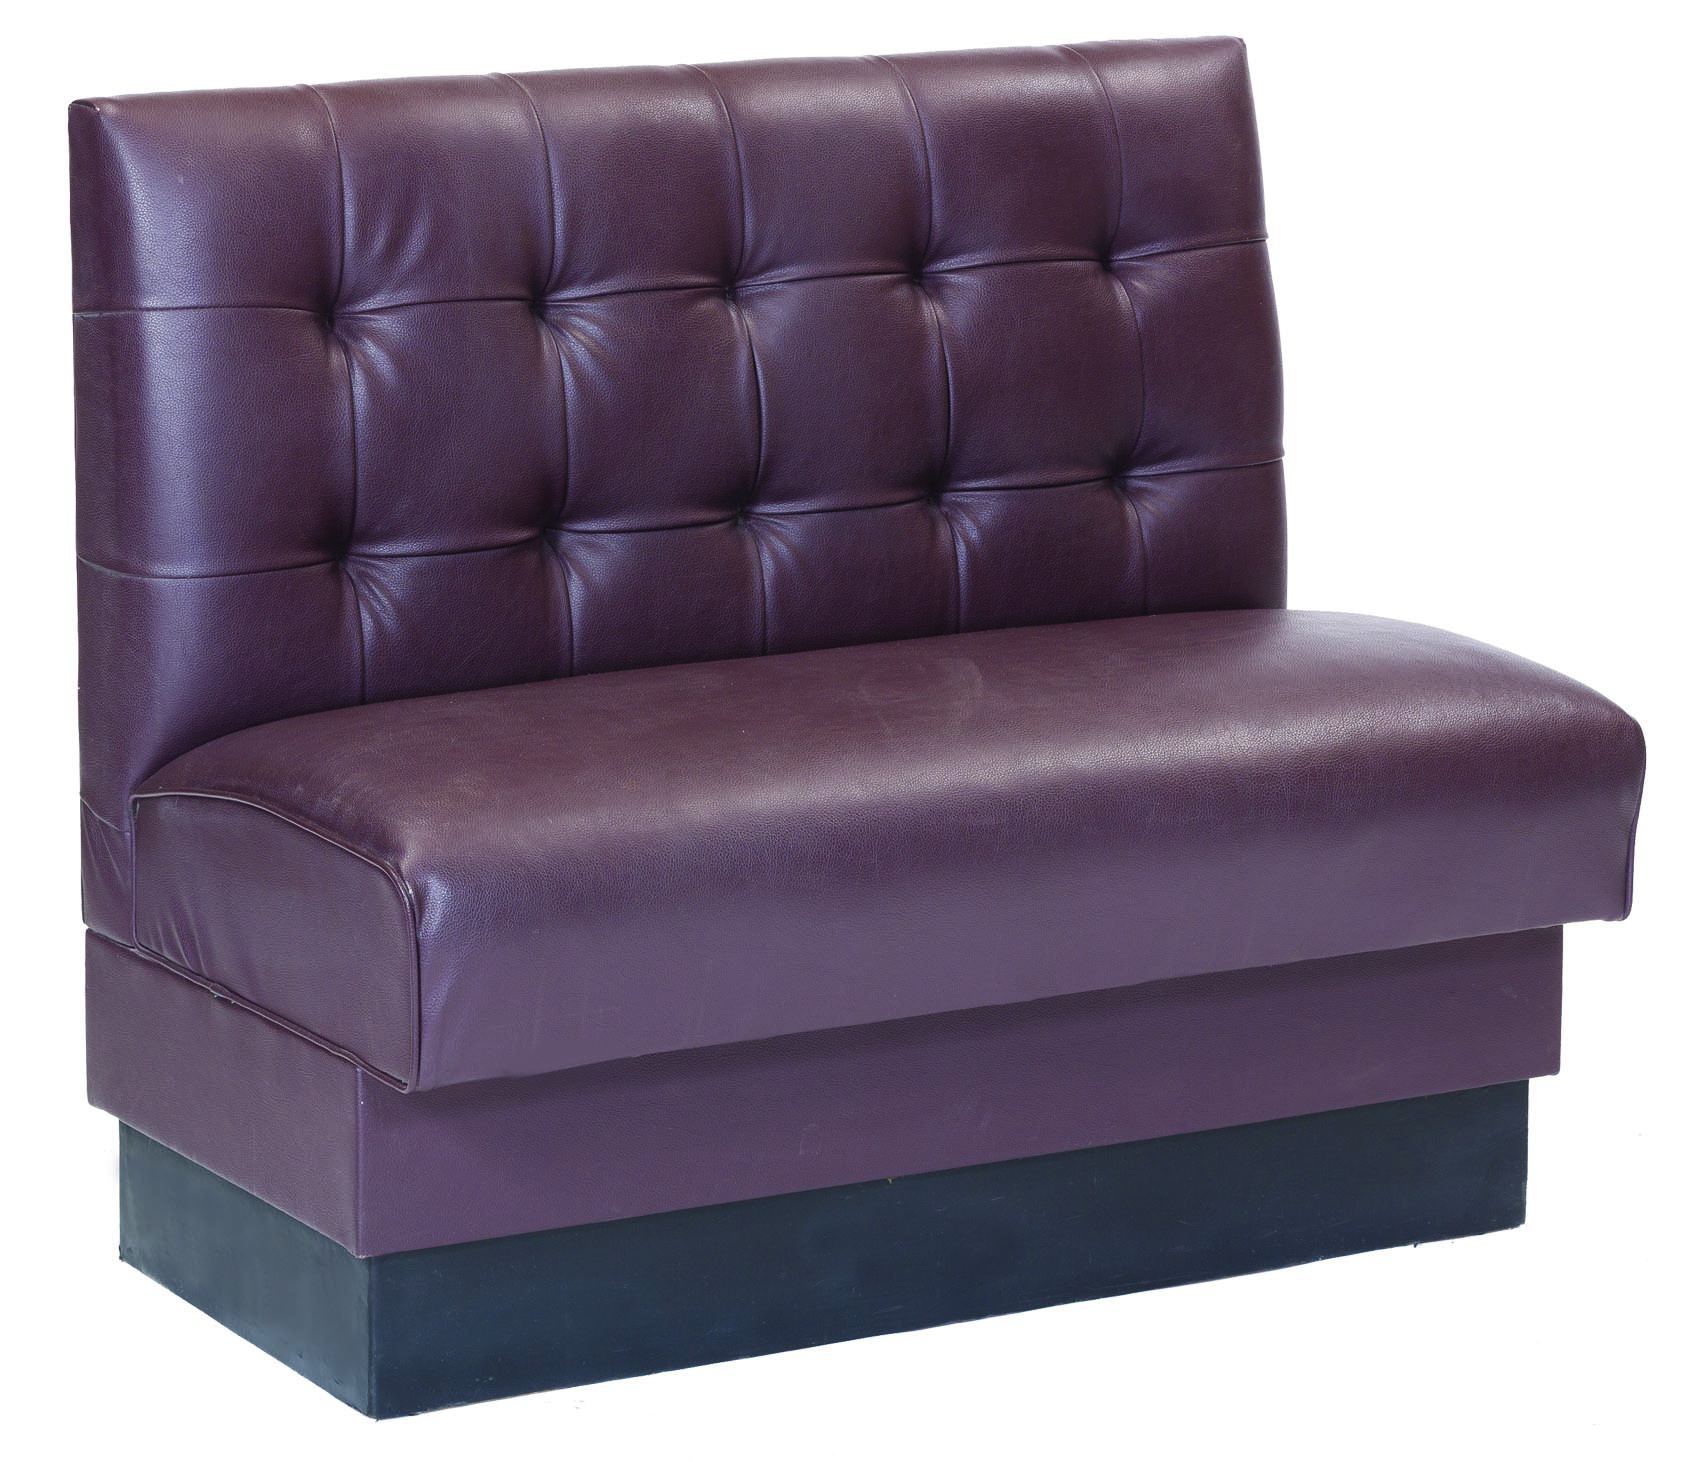 #4900 Square Tufted Back